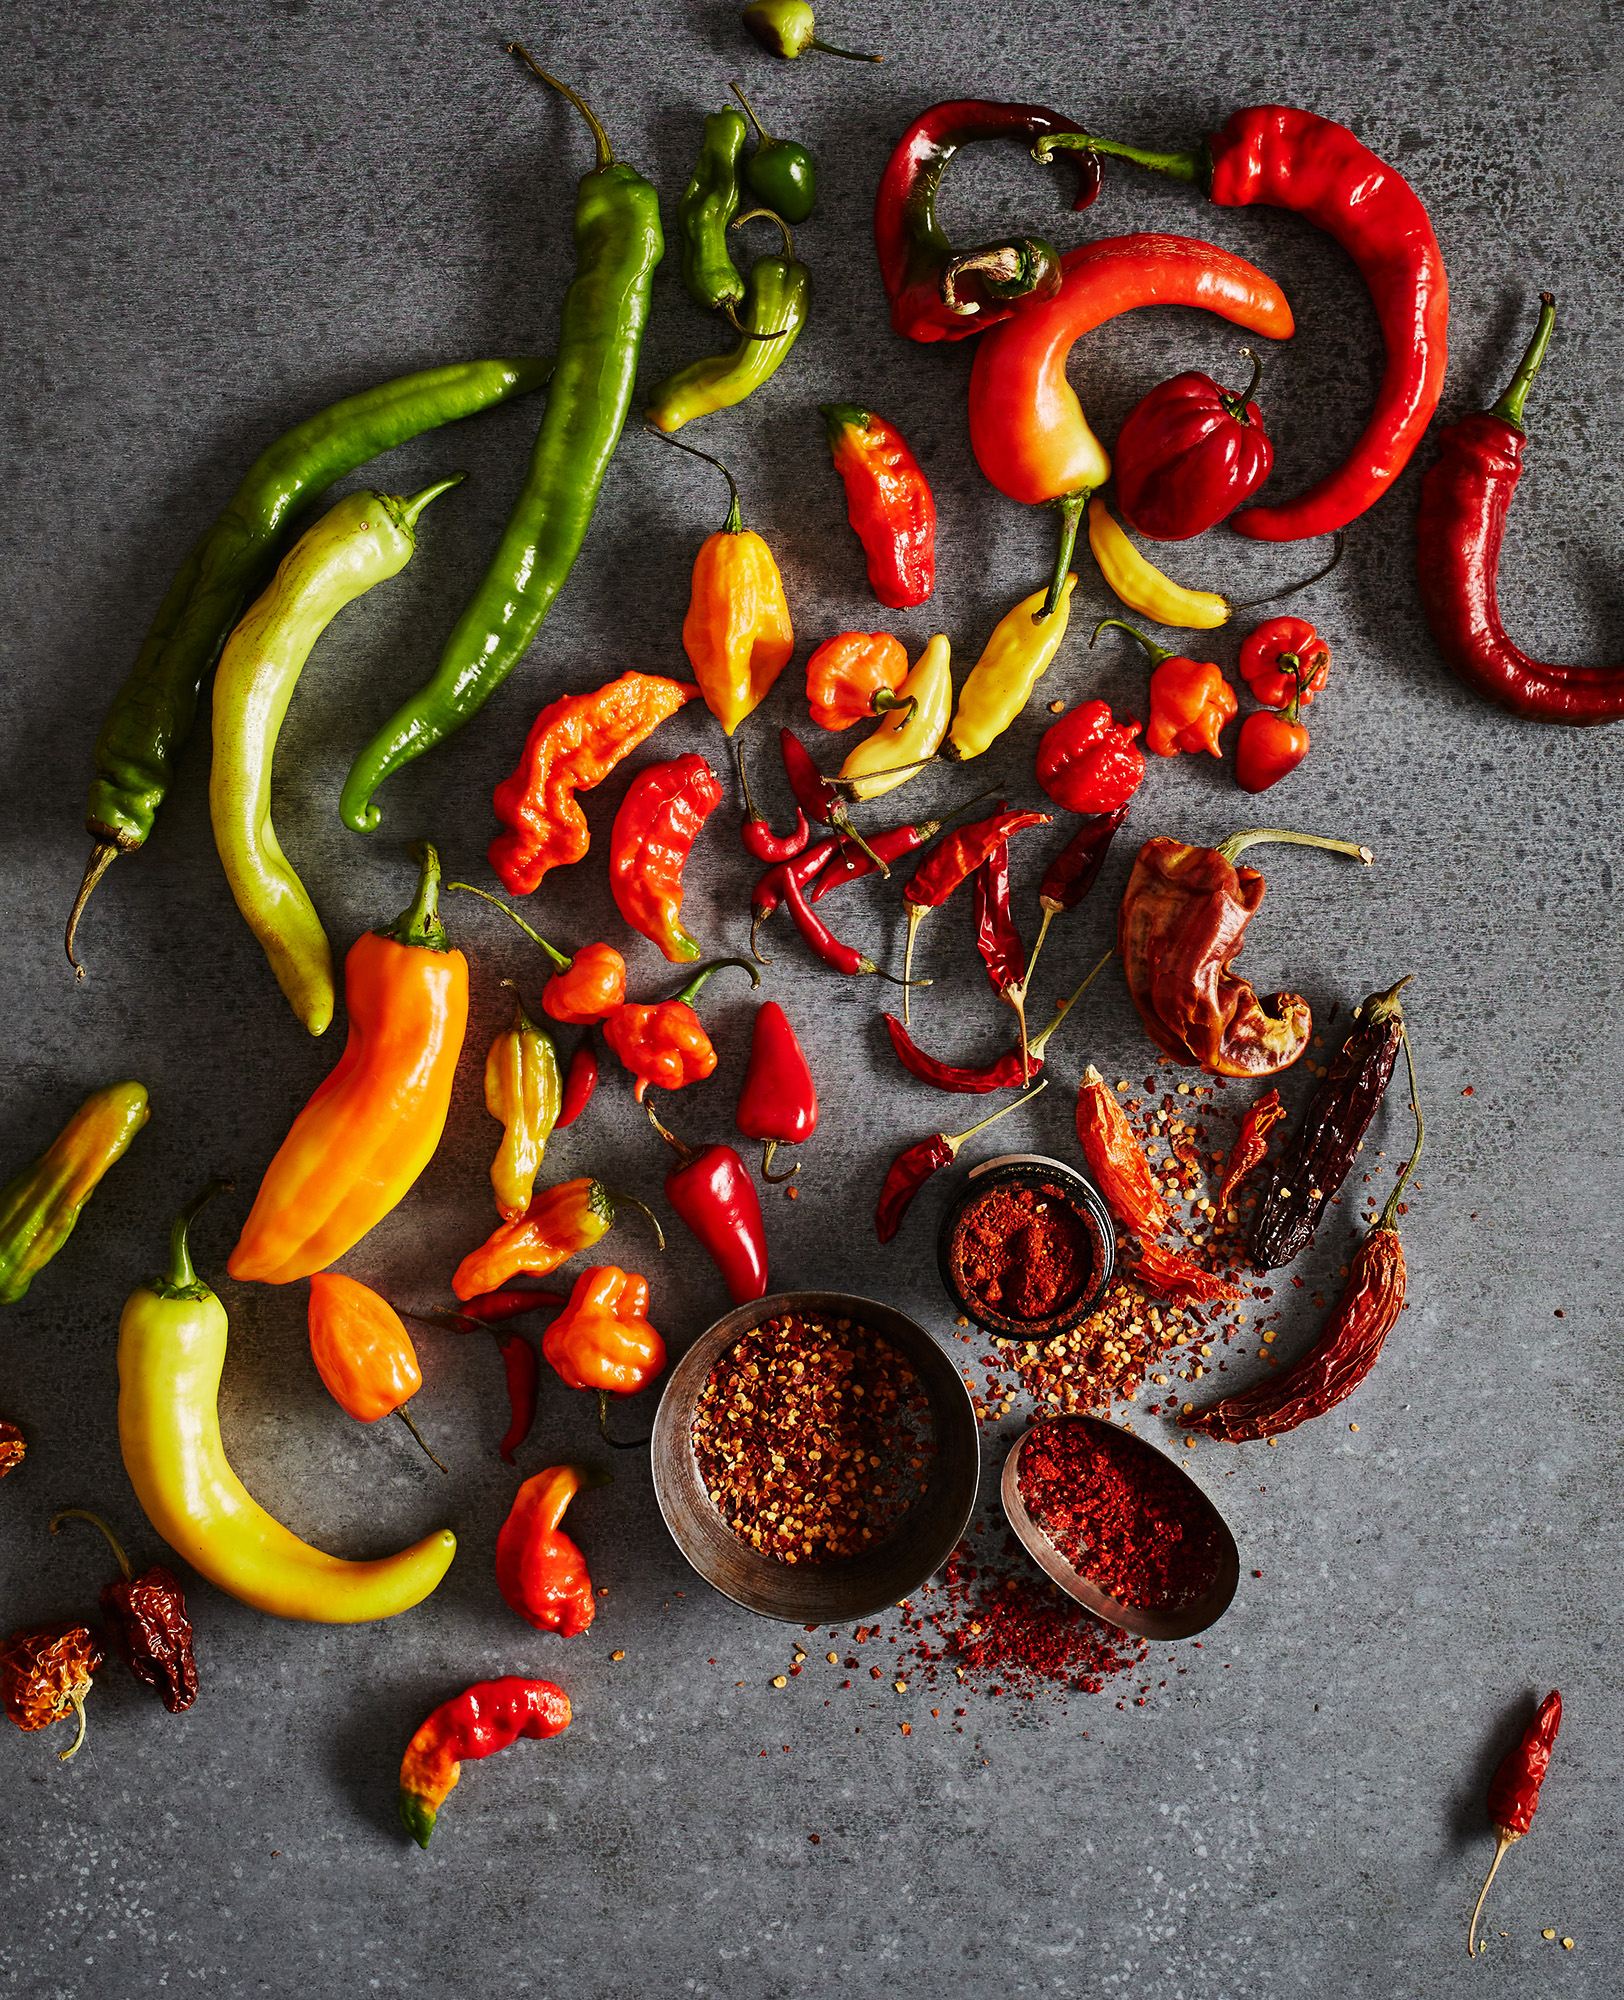 09_GoodEating_Peppers02_008.jpg